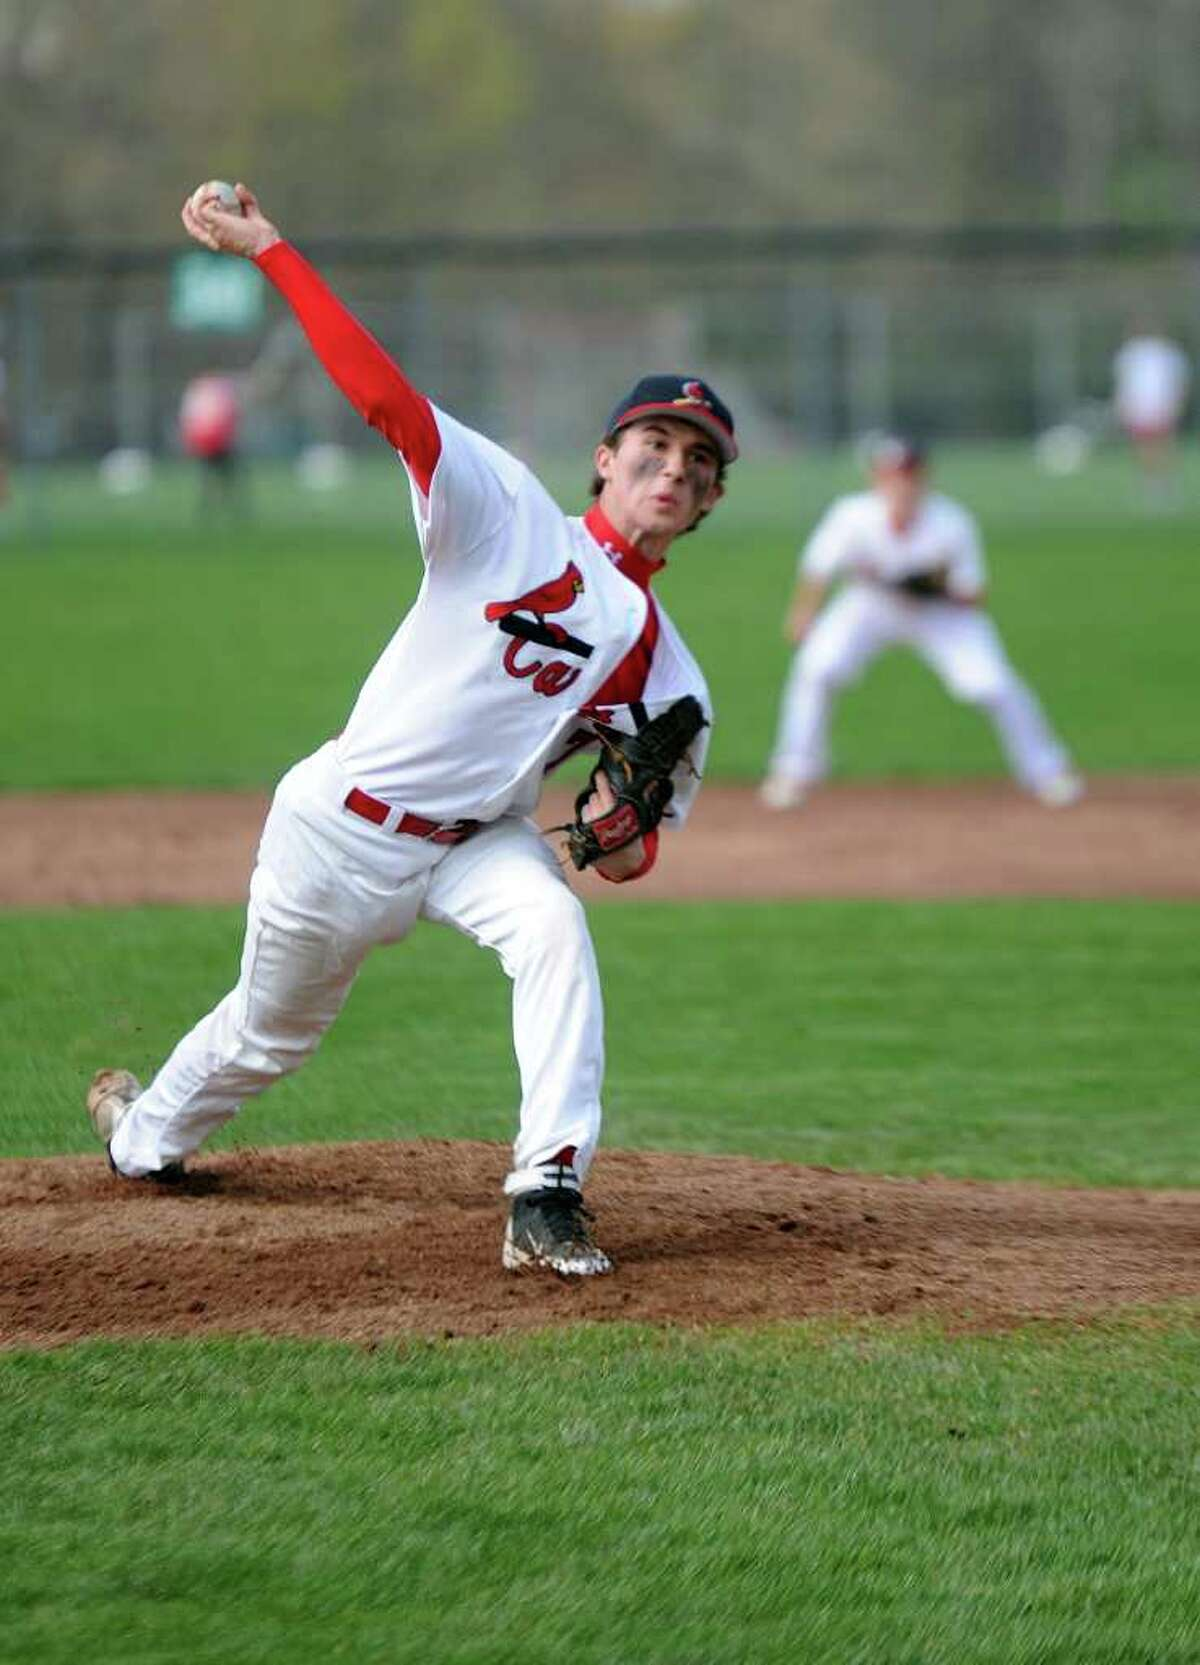 Greenwich pitcher Dylan Callahan throws the ball during Wednesday's game against Danbury at Greenwich High School on April 20, 2011.